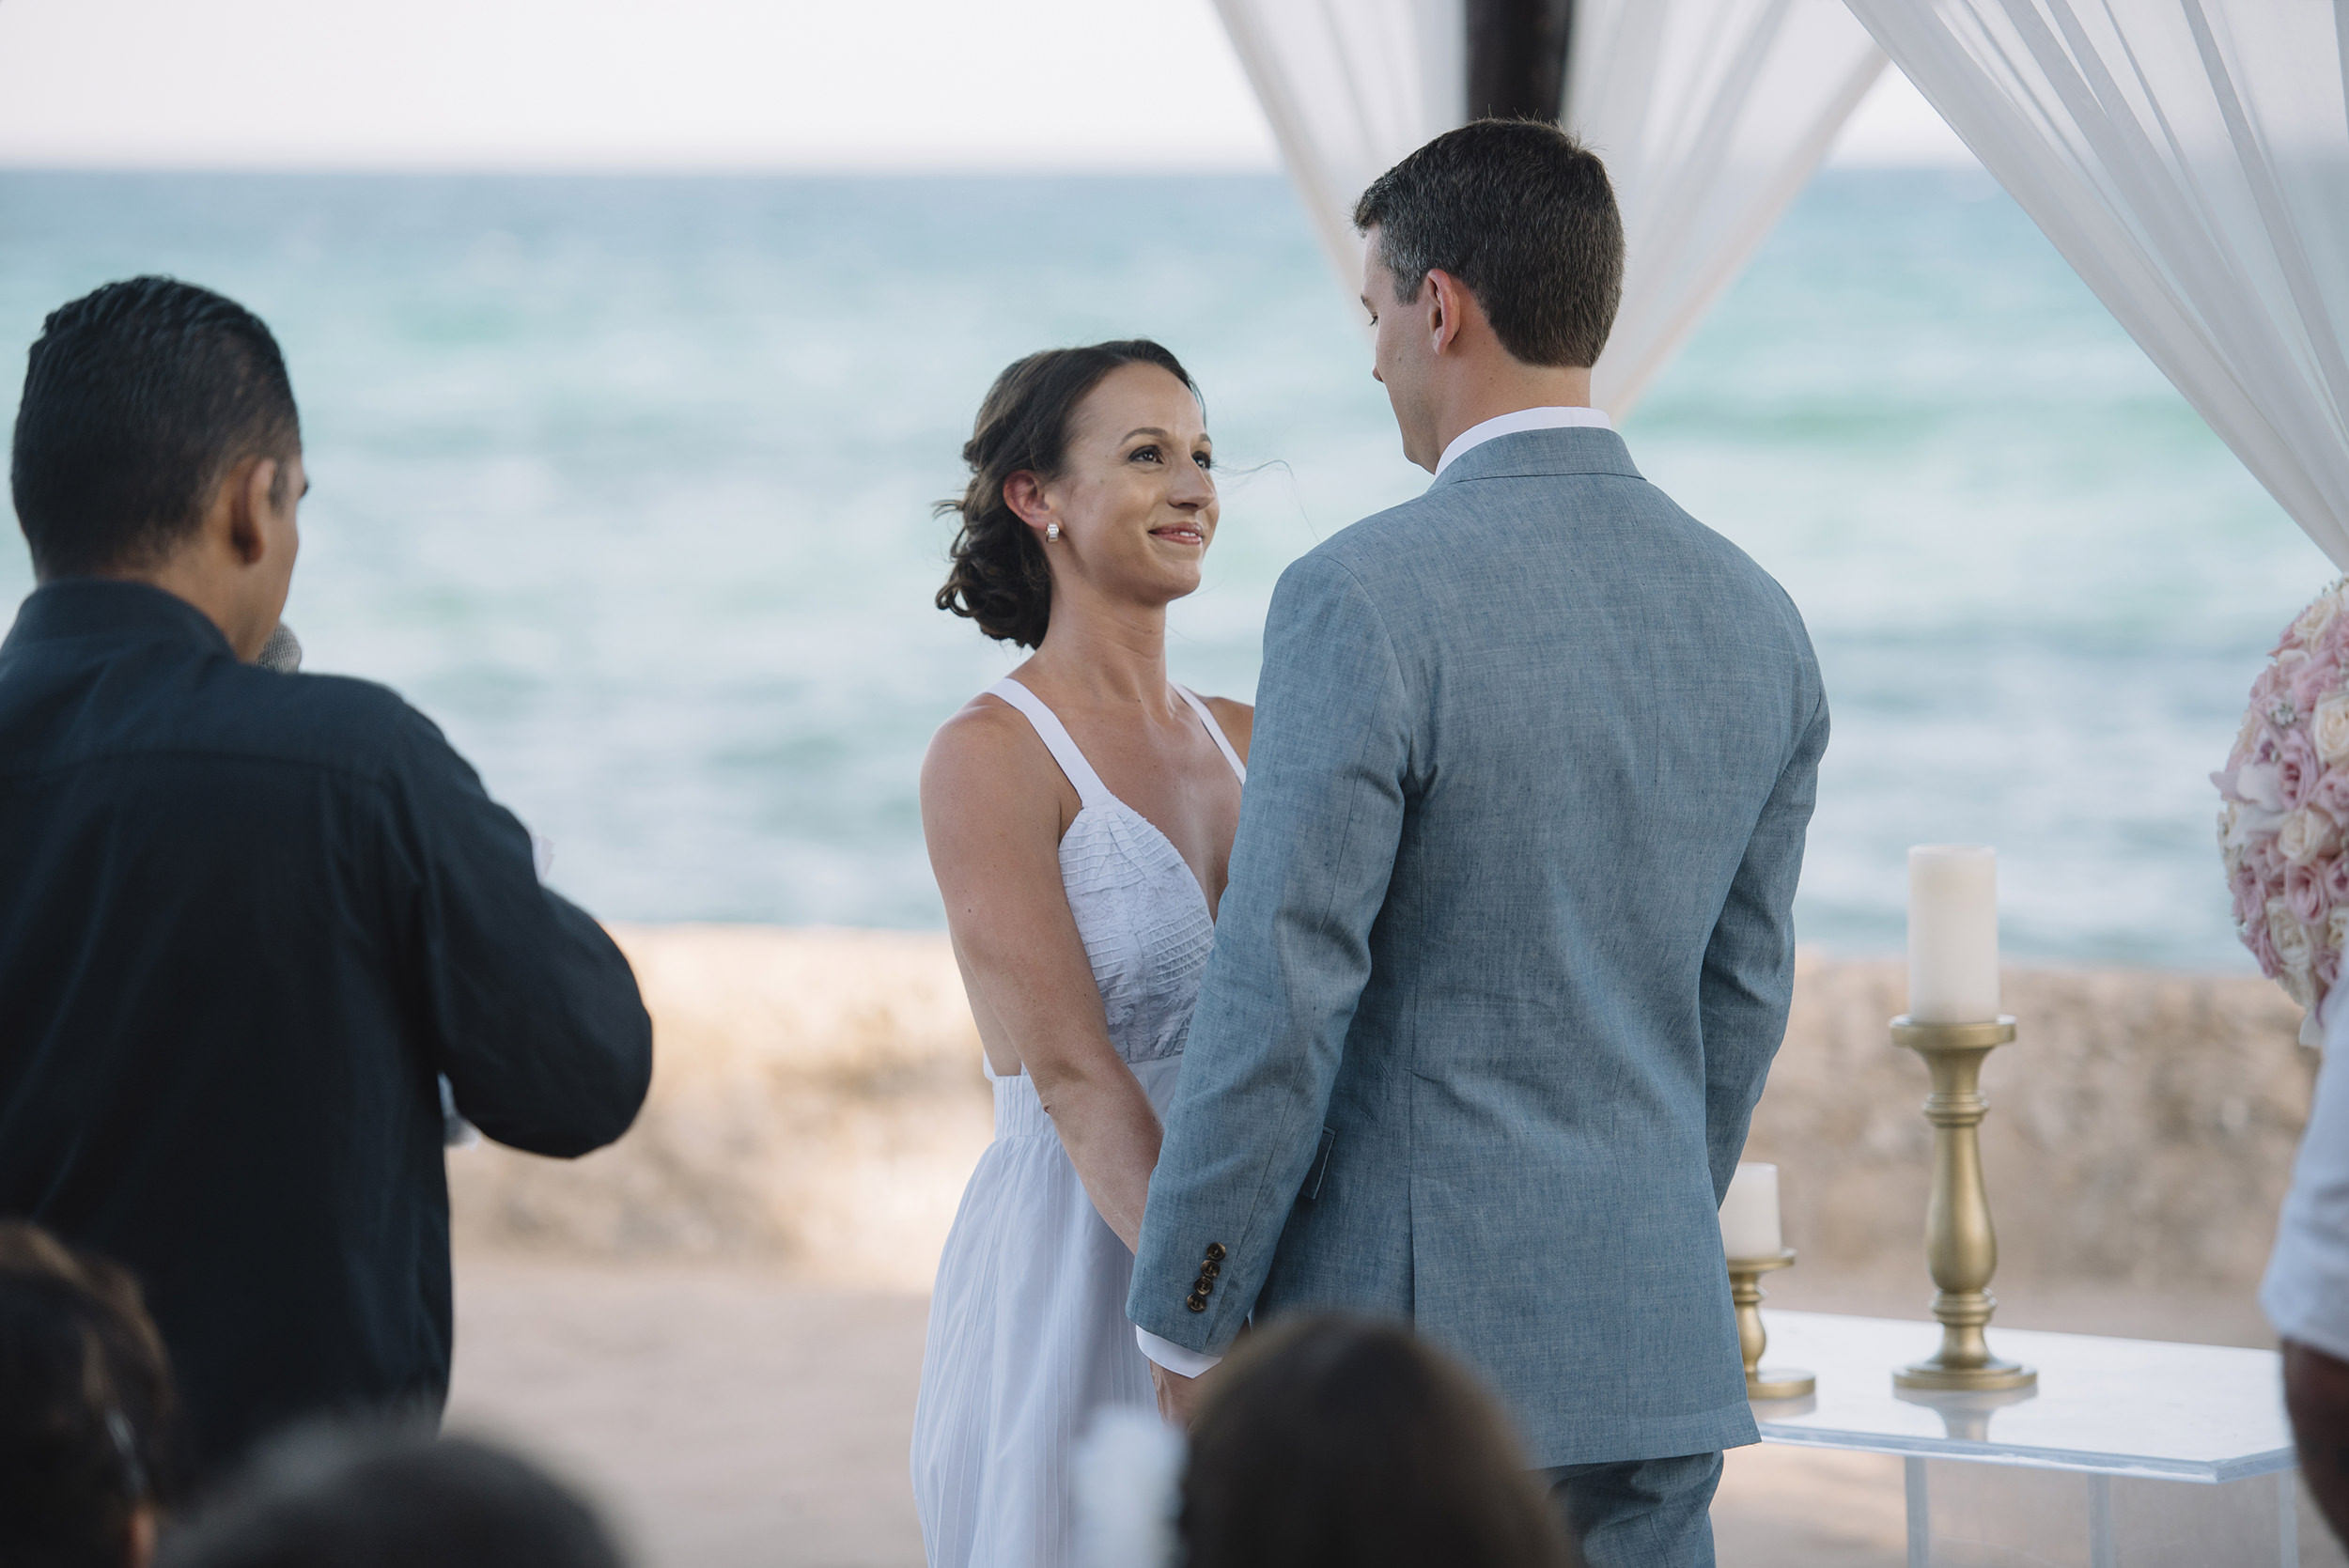 Colby-and-Jess-Intimate-Beach-Wedding-Destination-Cancun-Mexico51.jpg